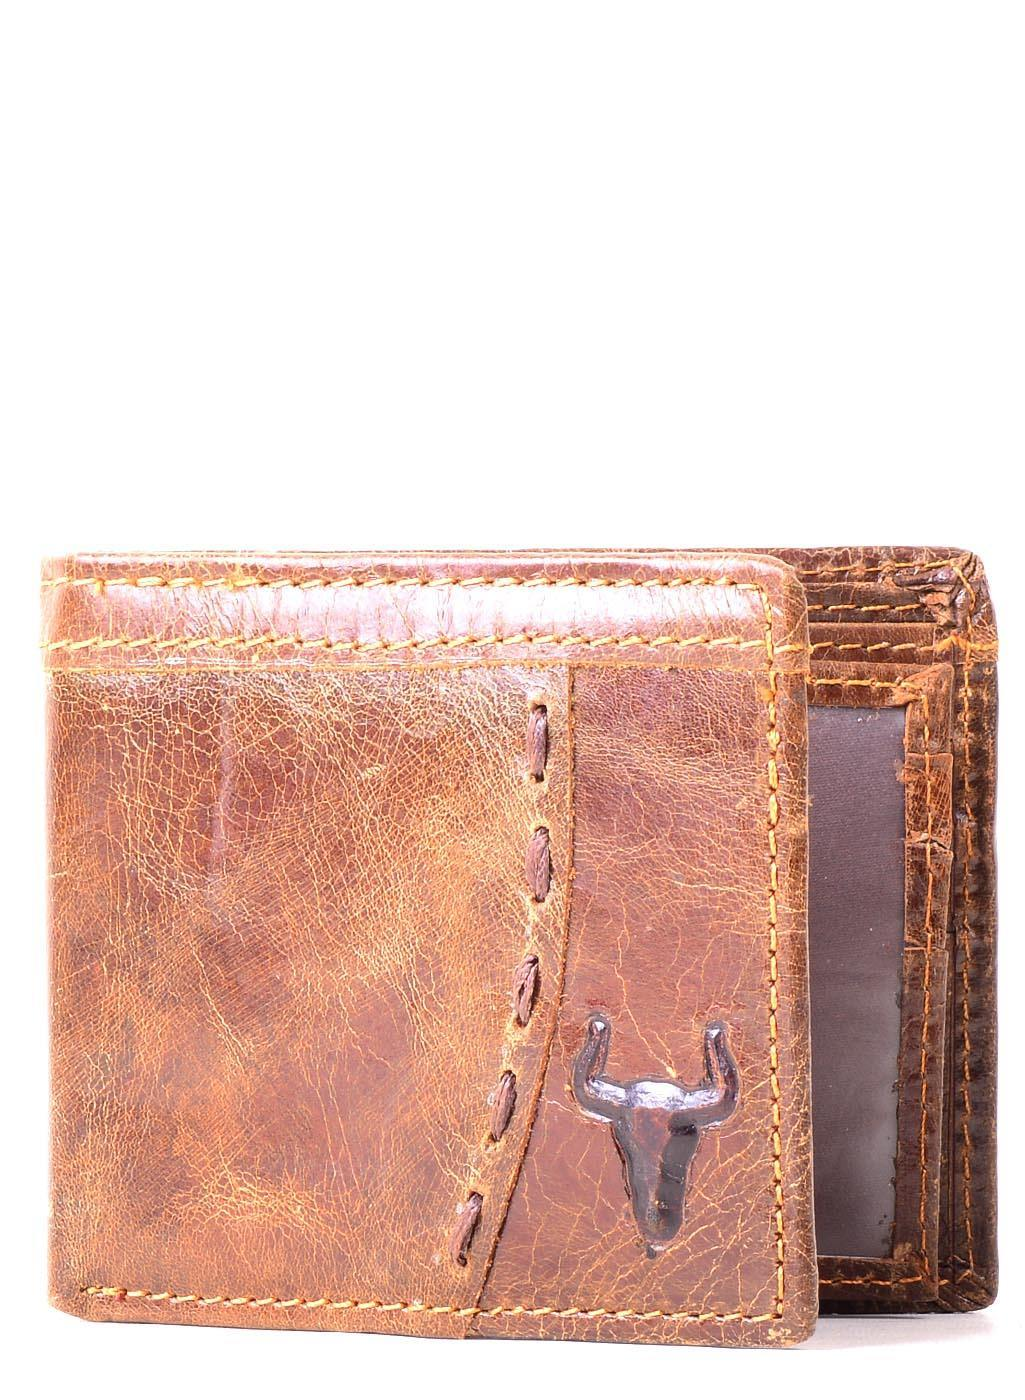 EthniCache Wallet Bold Handmade Pure Leather Wallet